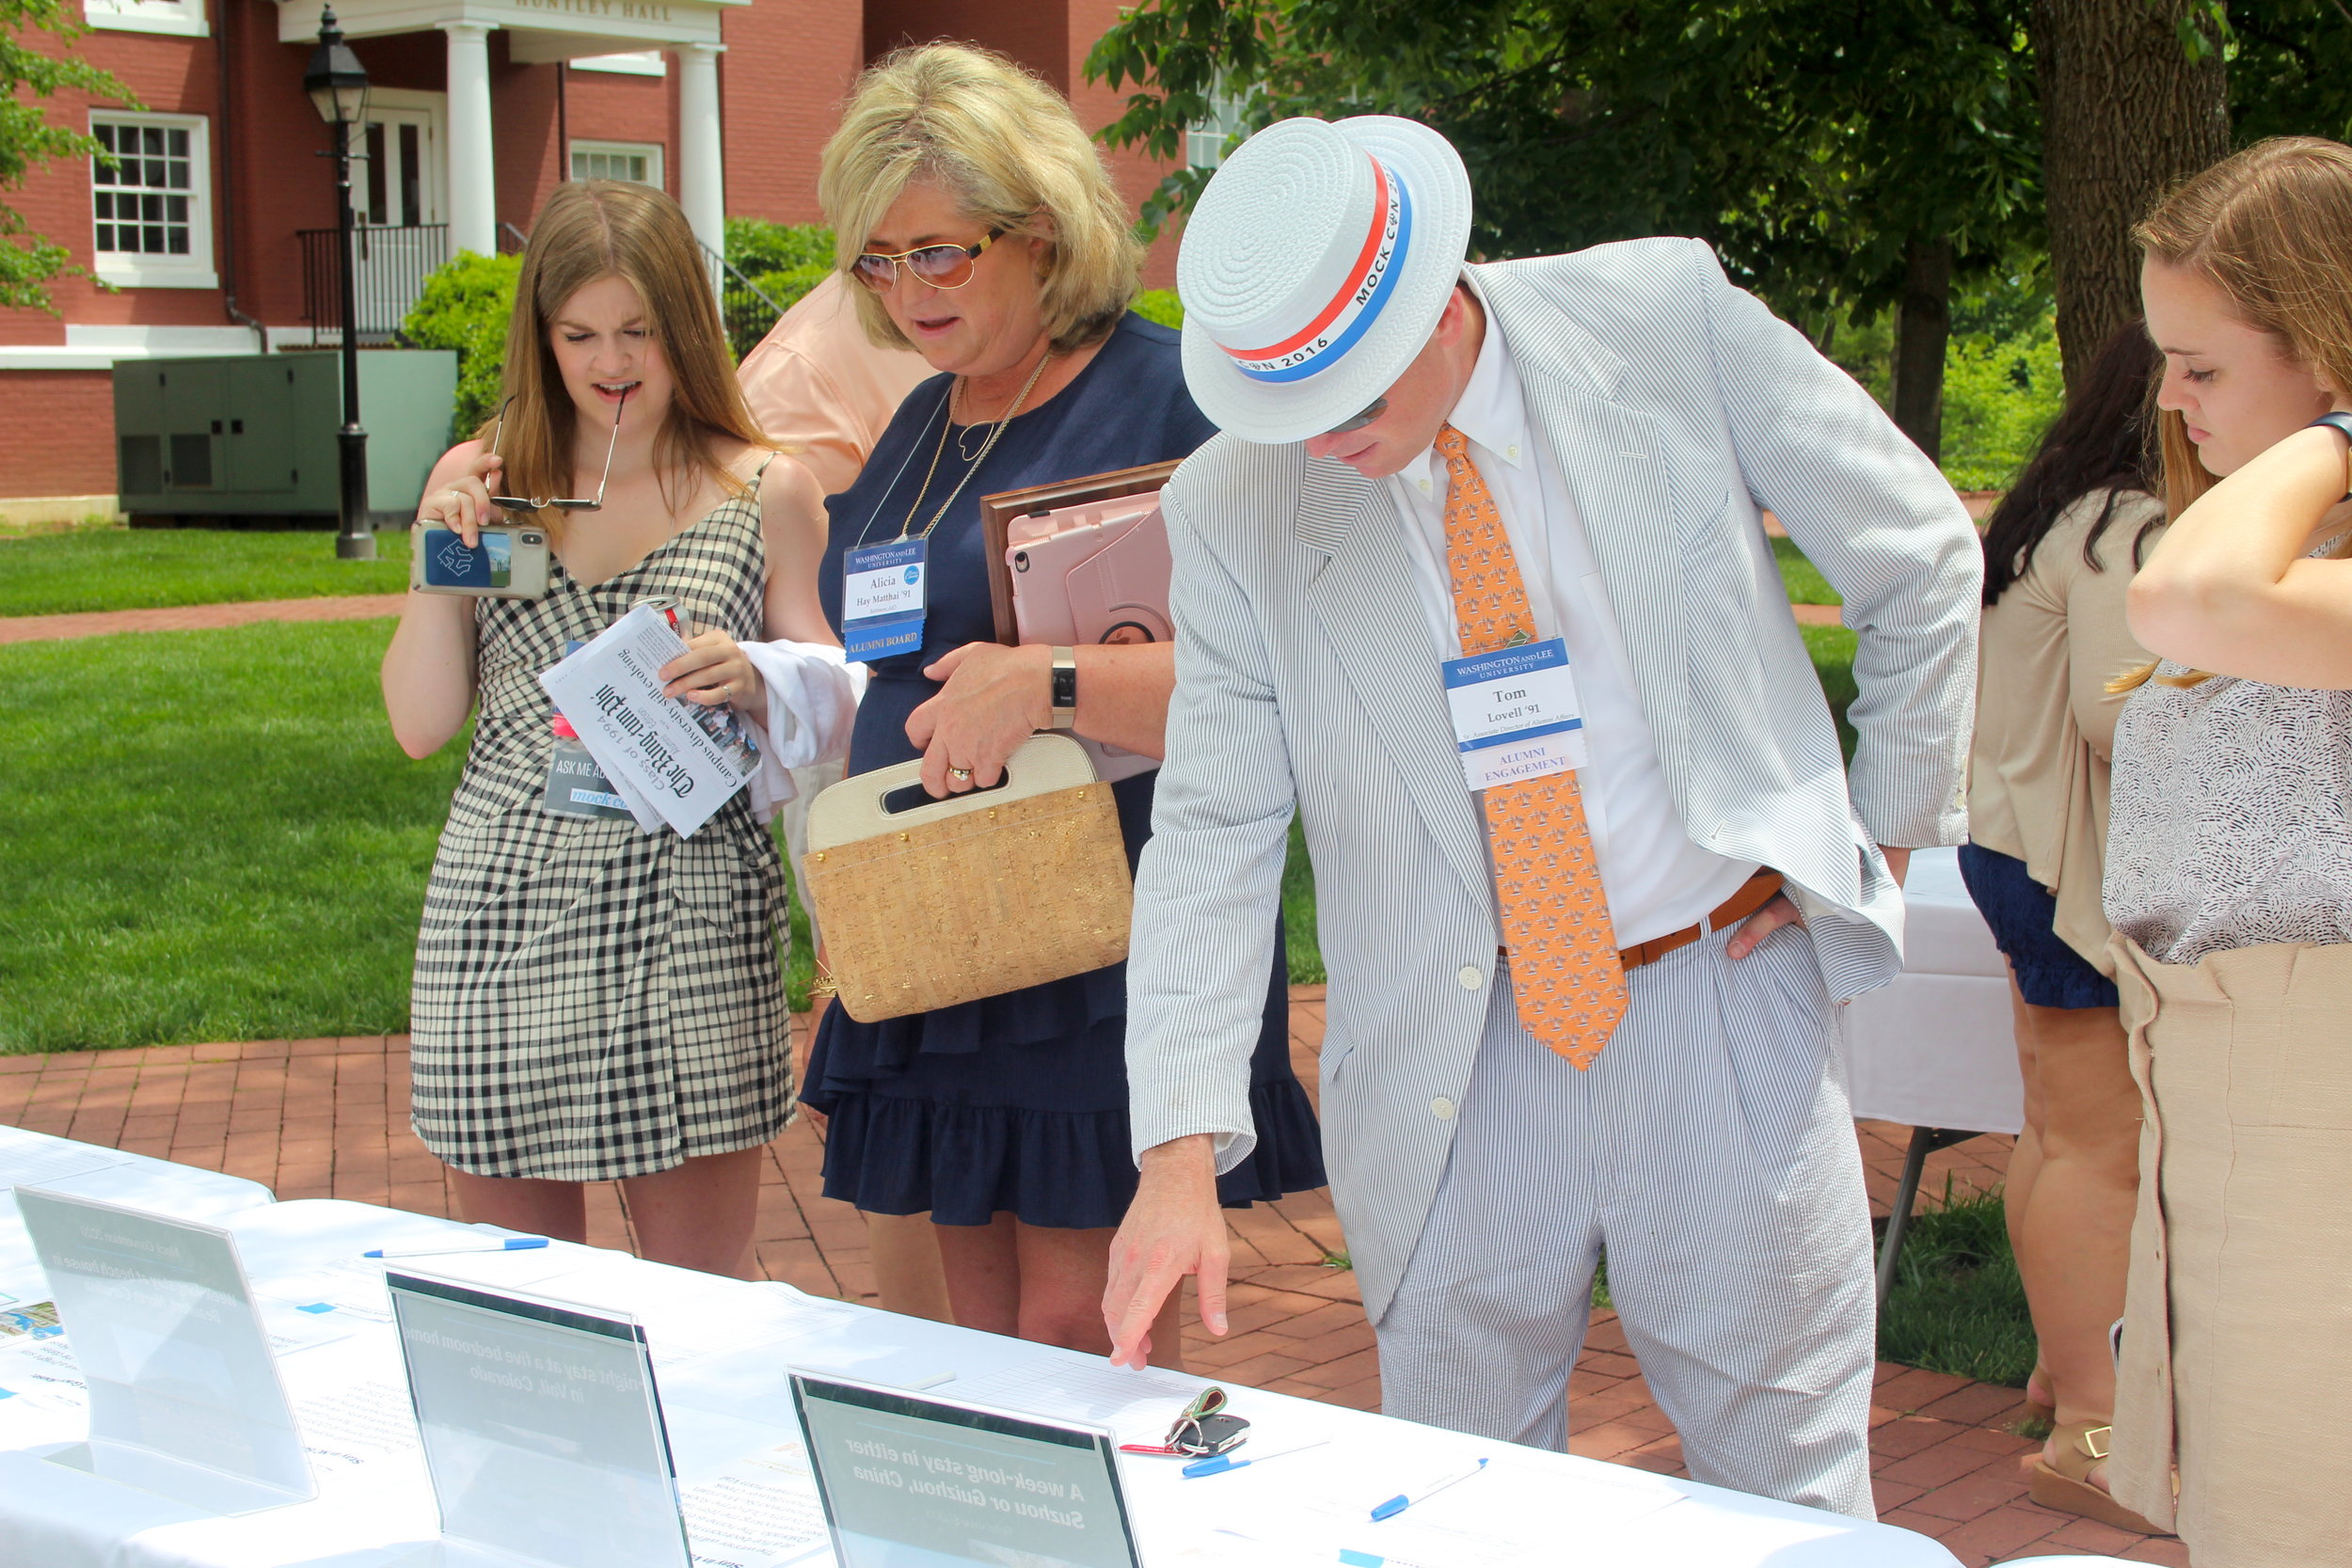 Two alumni peruse Silent Auction items, assisted by General Secretary Layne Smith '20 and Financial Chair Elizabeth Thompson '20.